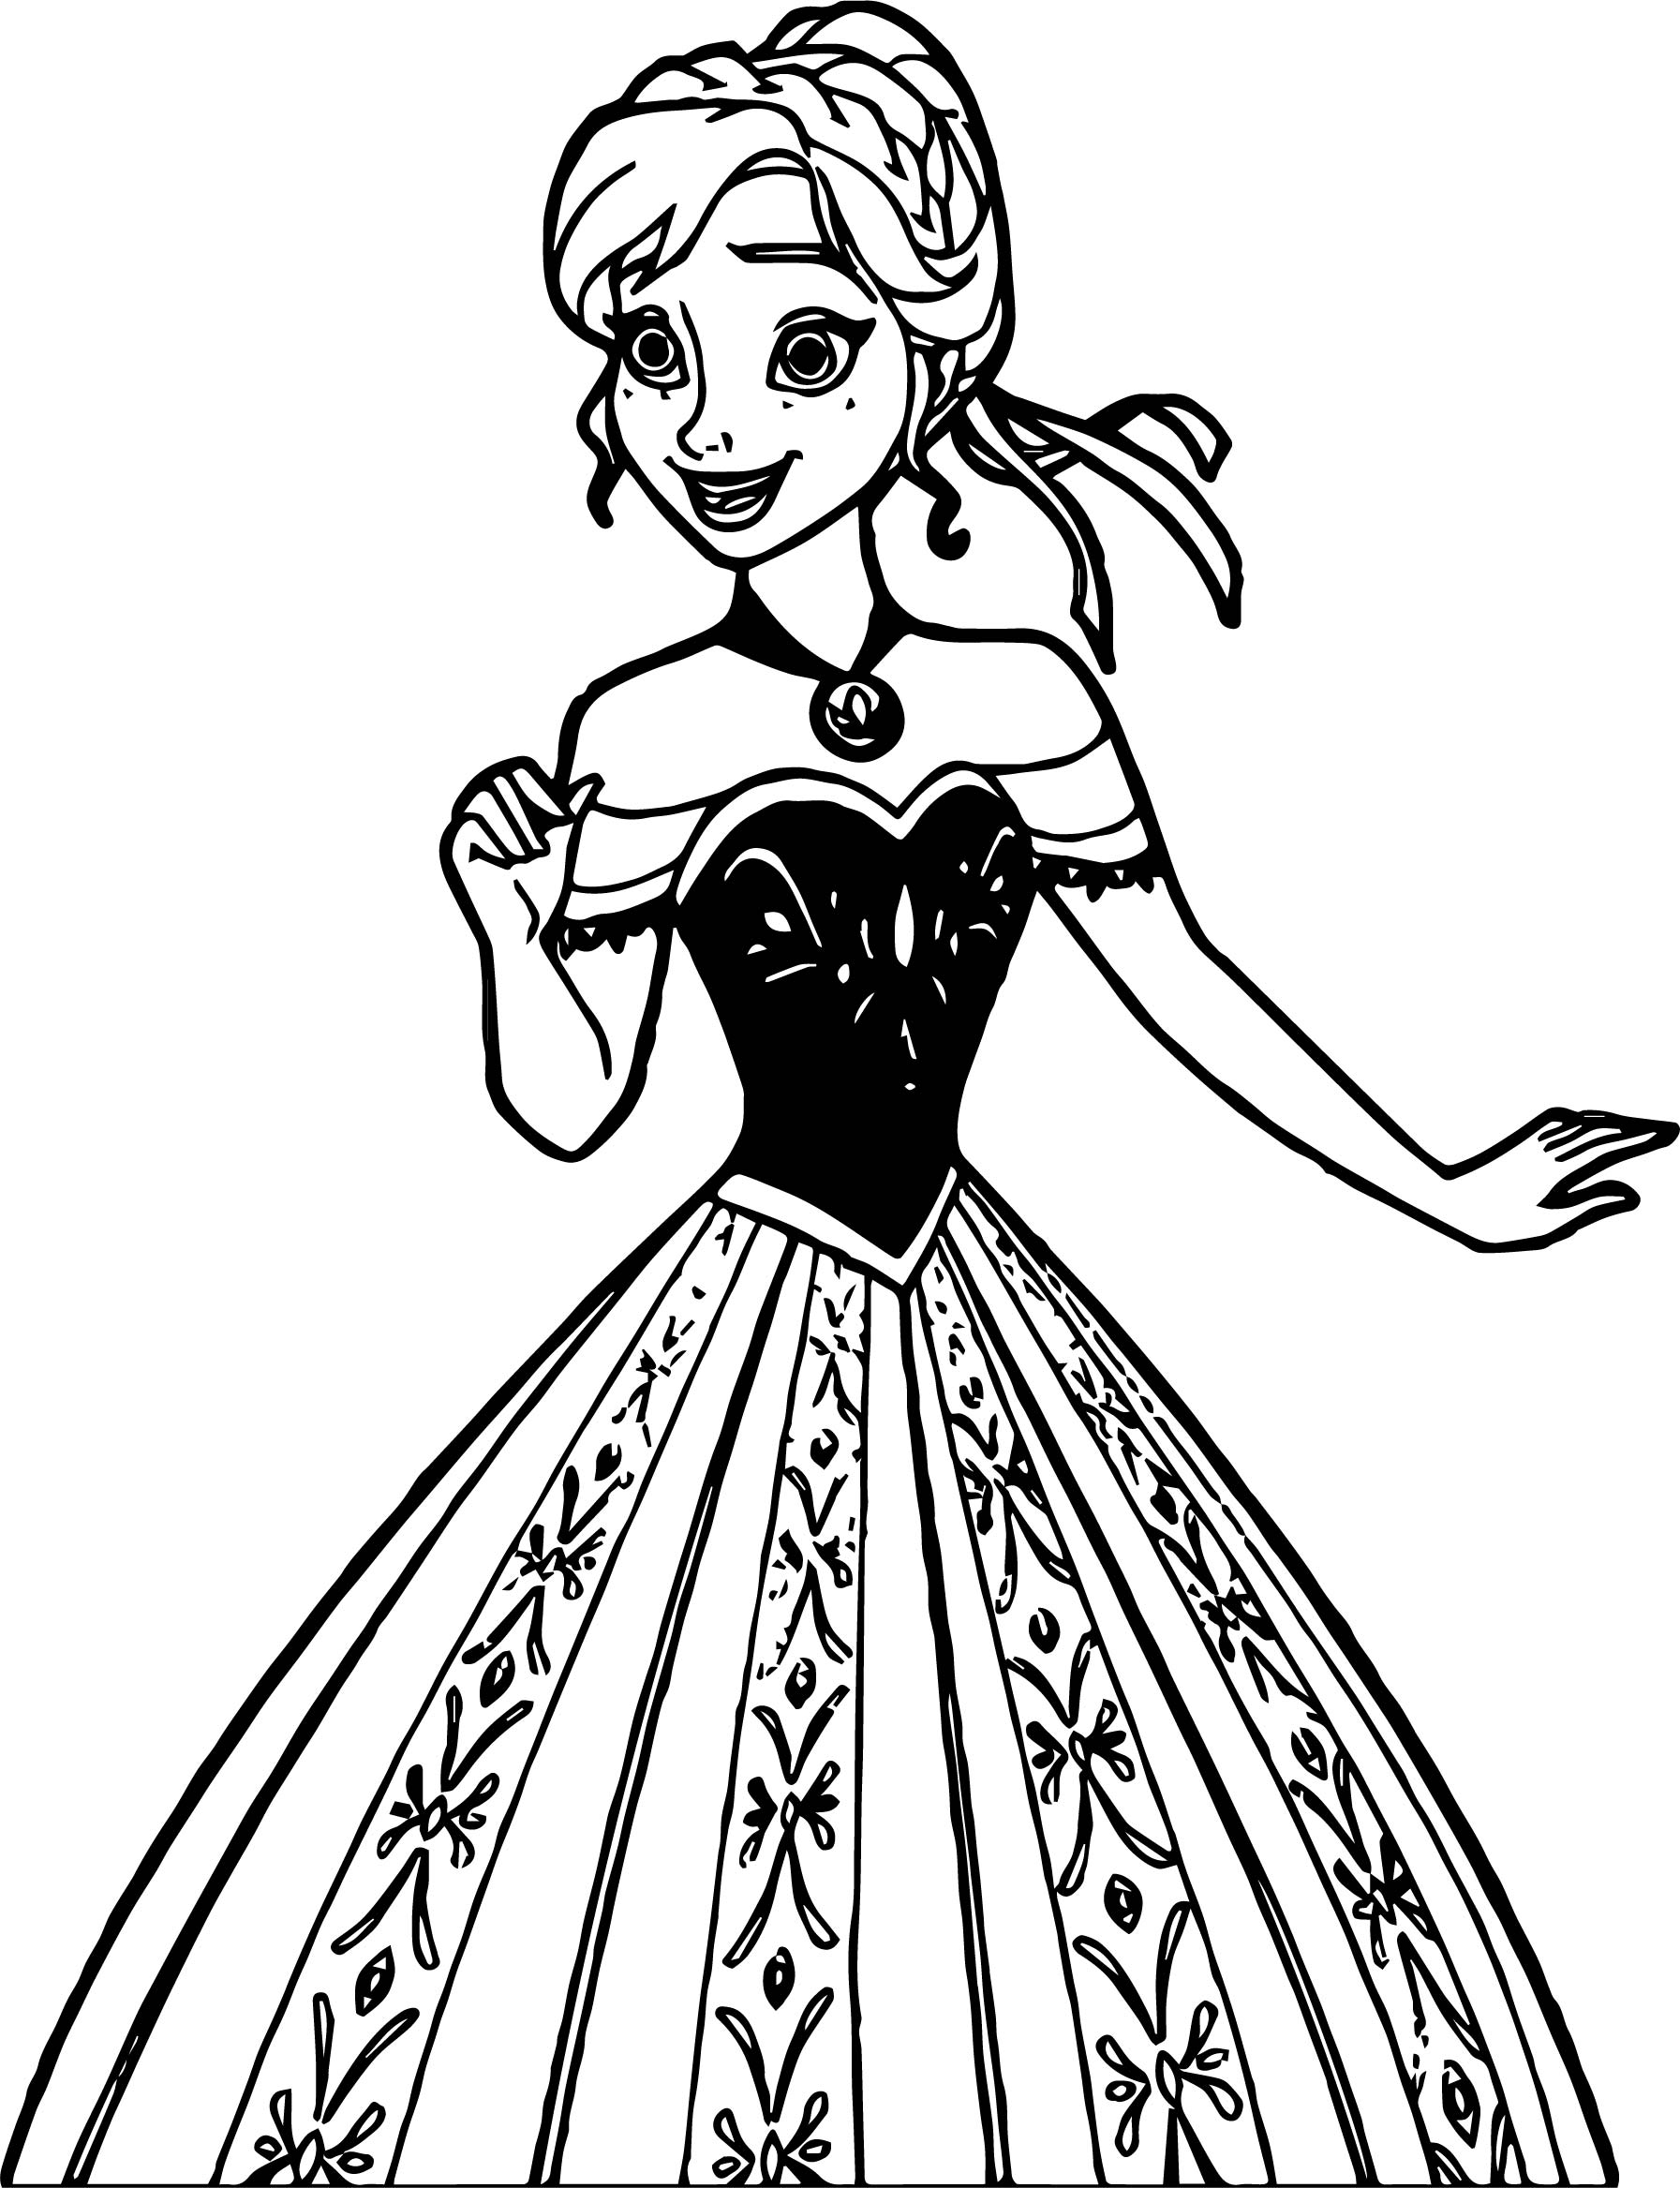 A new coat for anna coloring pages ~ Anna Dress New Coloring Page | Wecoloringpage.com